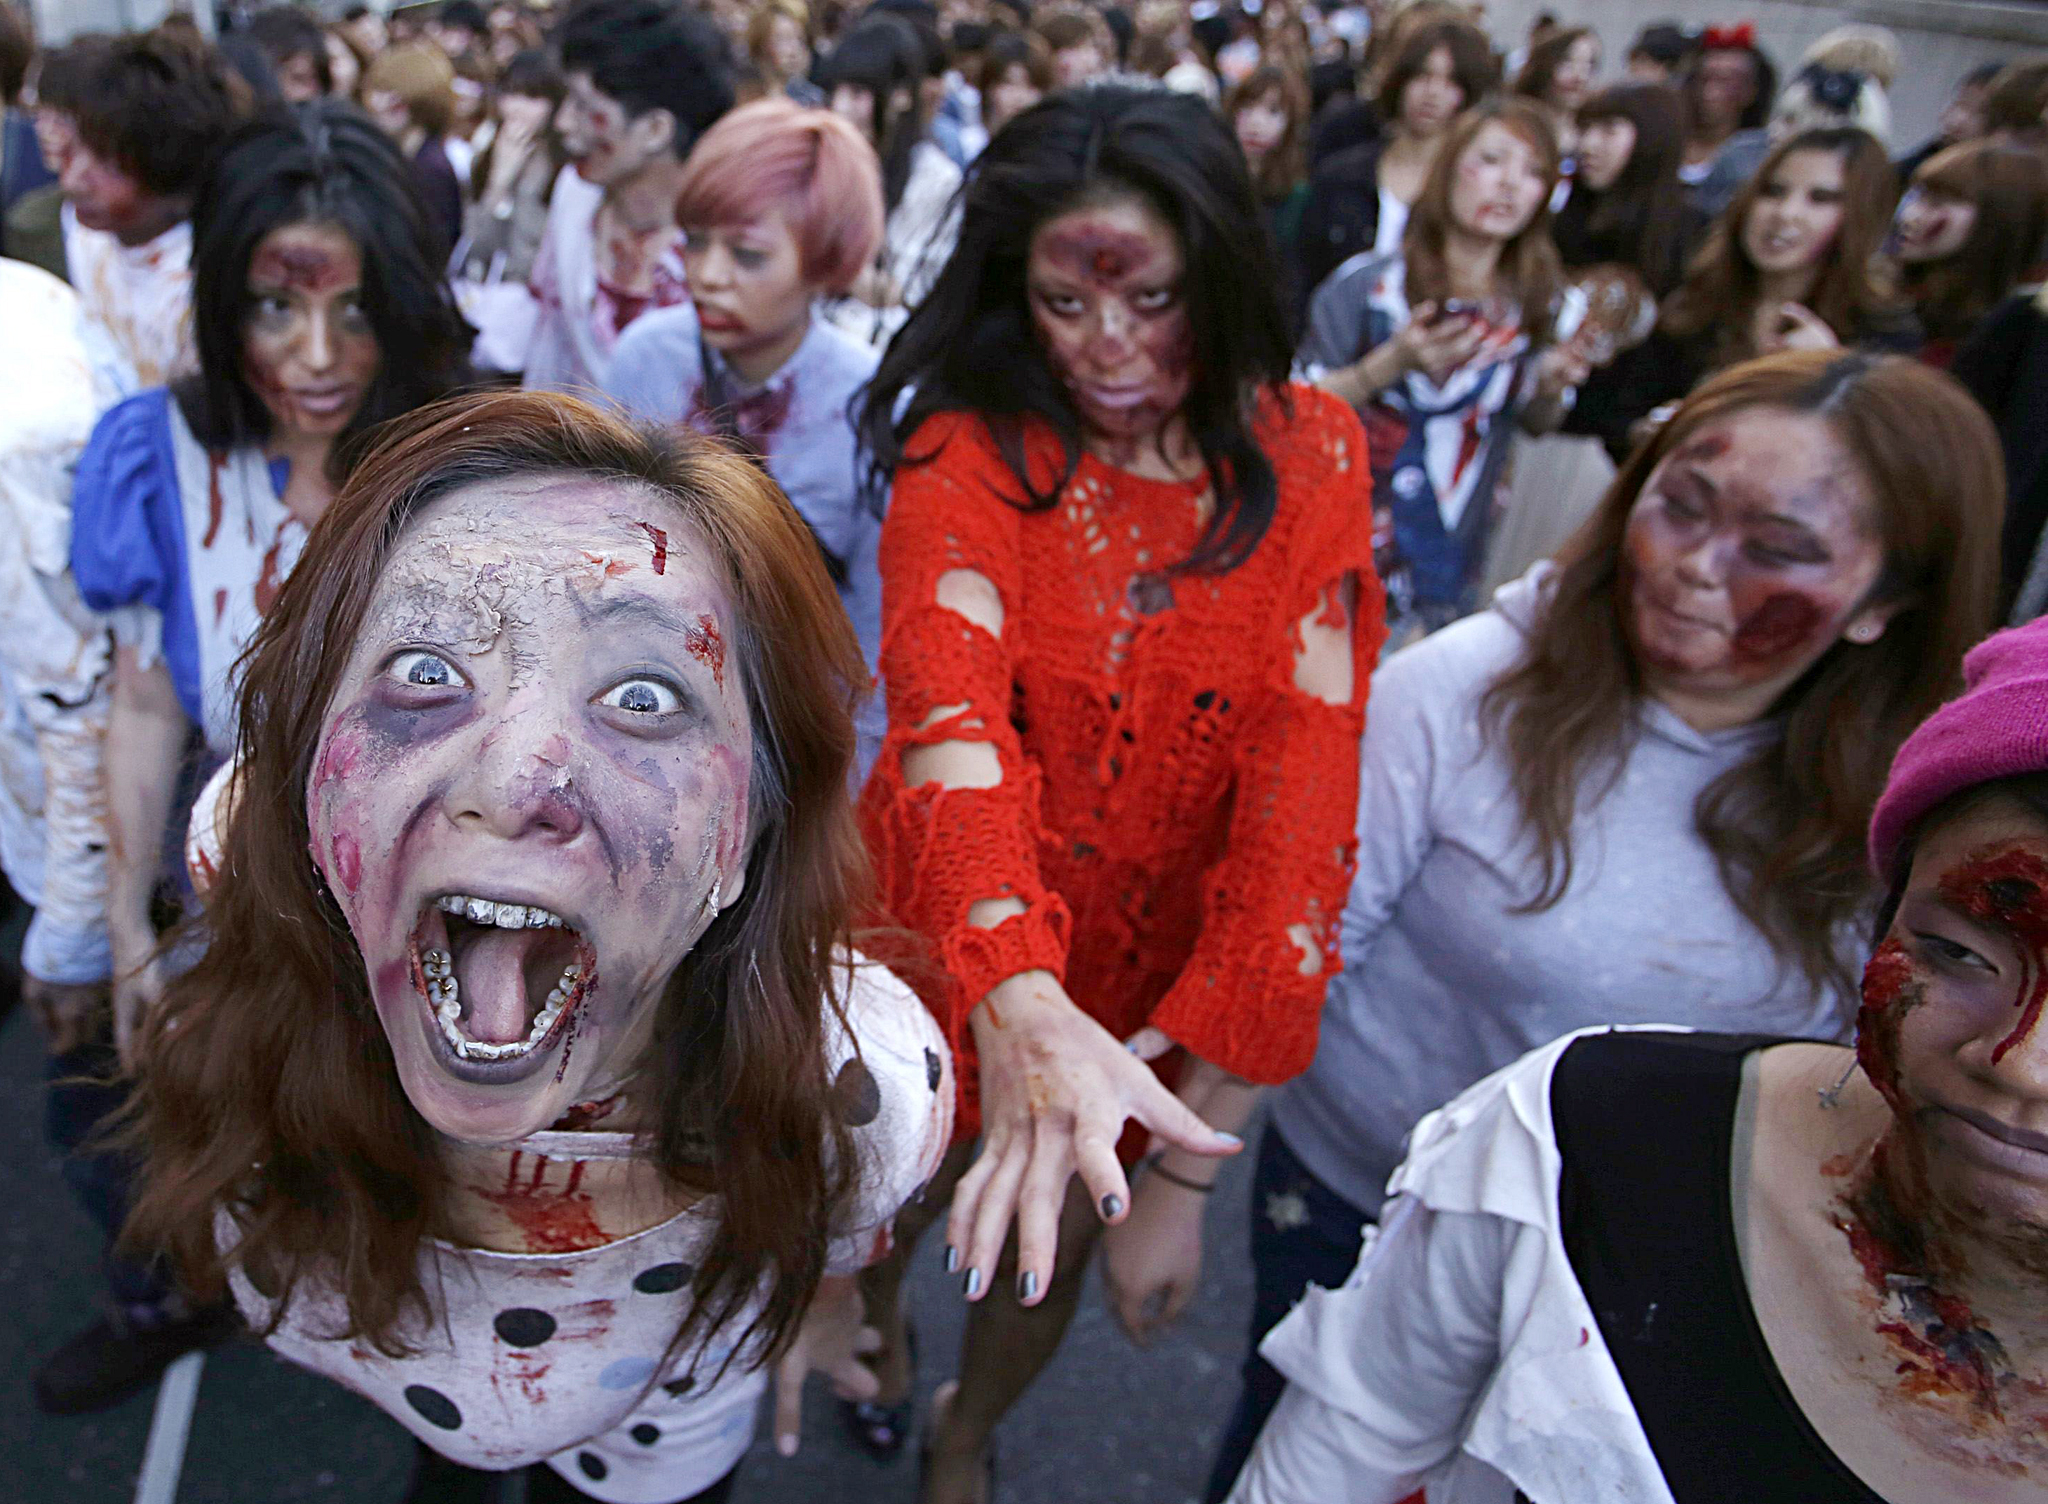 "Participants wearing costumes and make-up as zombies march during a Halloween event to promote the U.S. TV series ""The Walking Dead"" at Tokyo Tower...Participants wearing costumes and make-up as zombies march during a Halloween event to promote the U.S. TV series ""The Walking Dead"" at Tokyo Tower October 31, 2013. More than a thousand people dressed as zombies participated in the event to simulate taking over the tower, according to organisers.   REUTERS/Issei Kato"